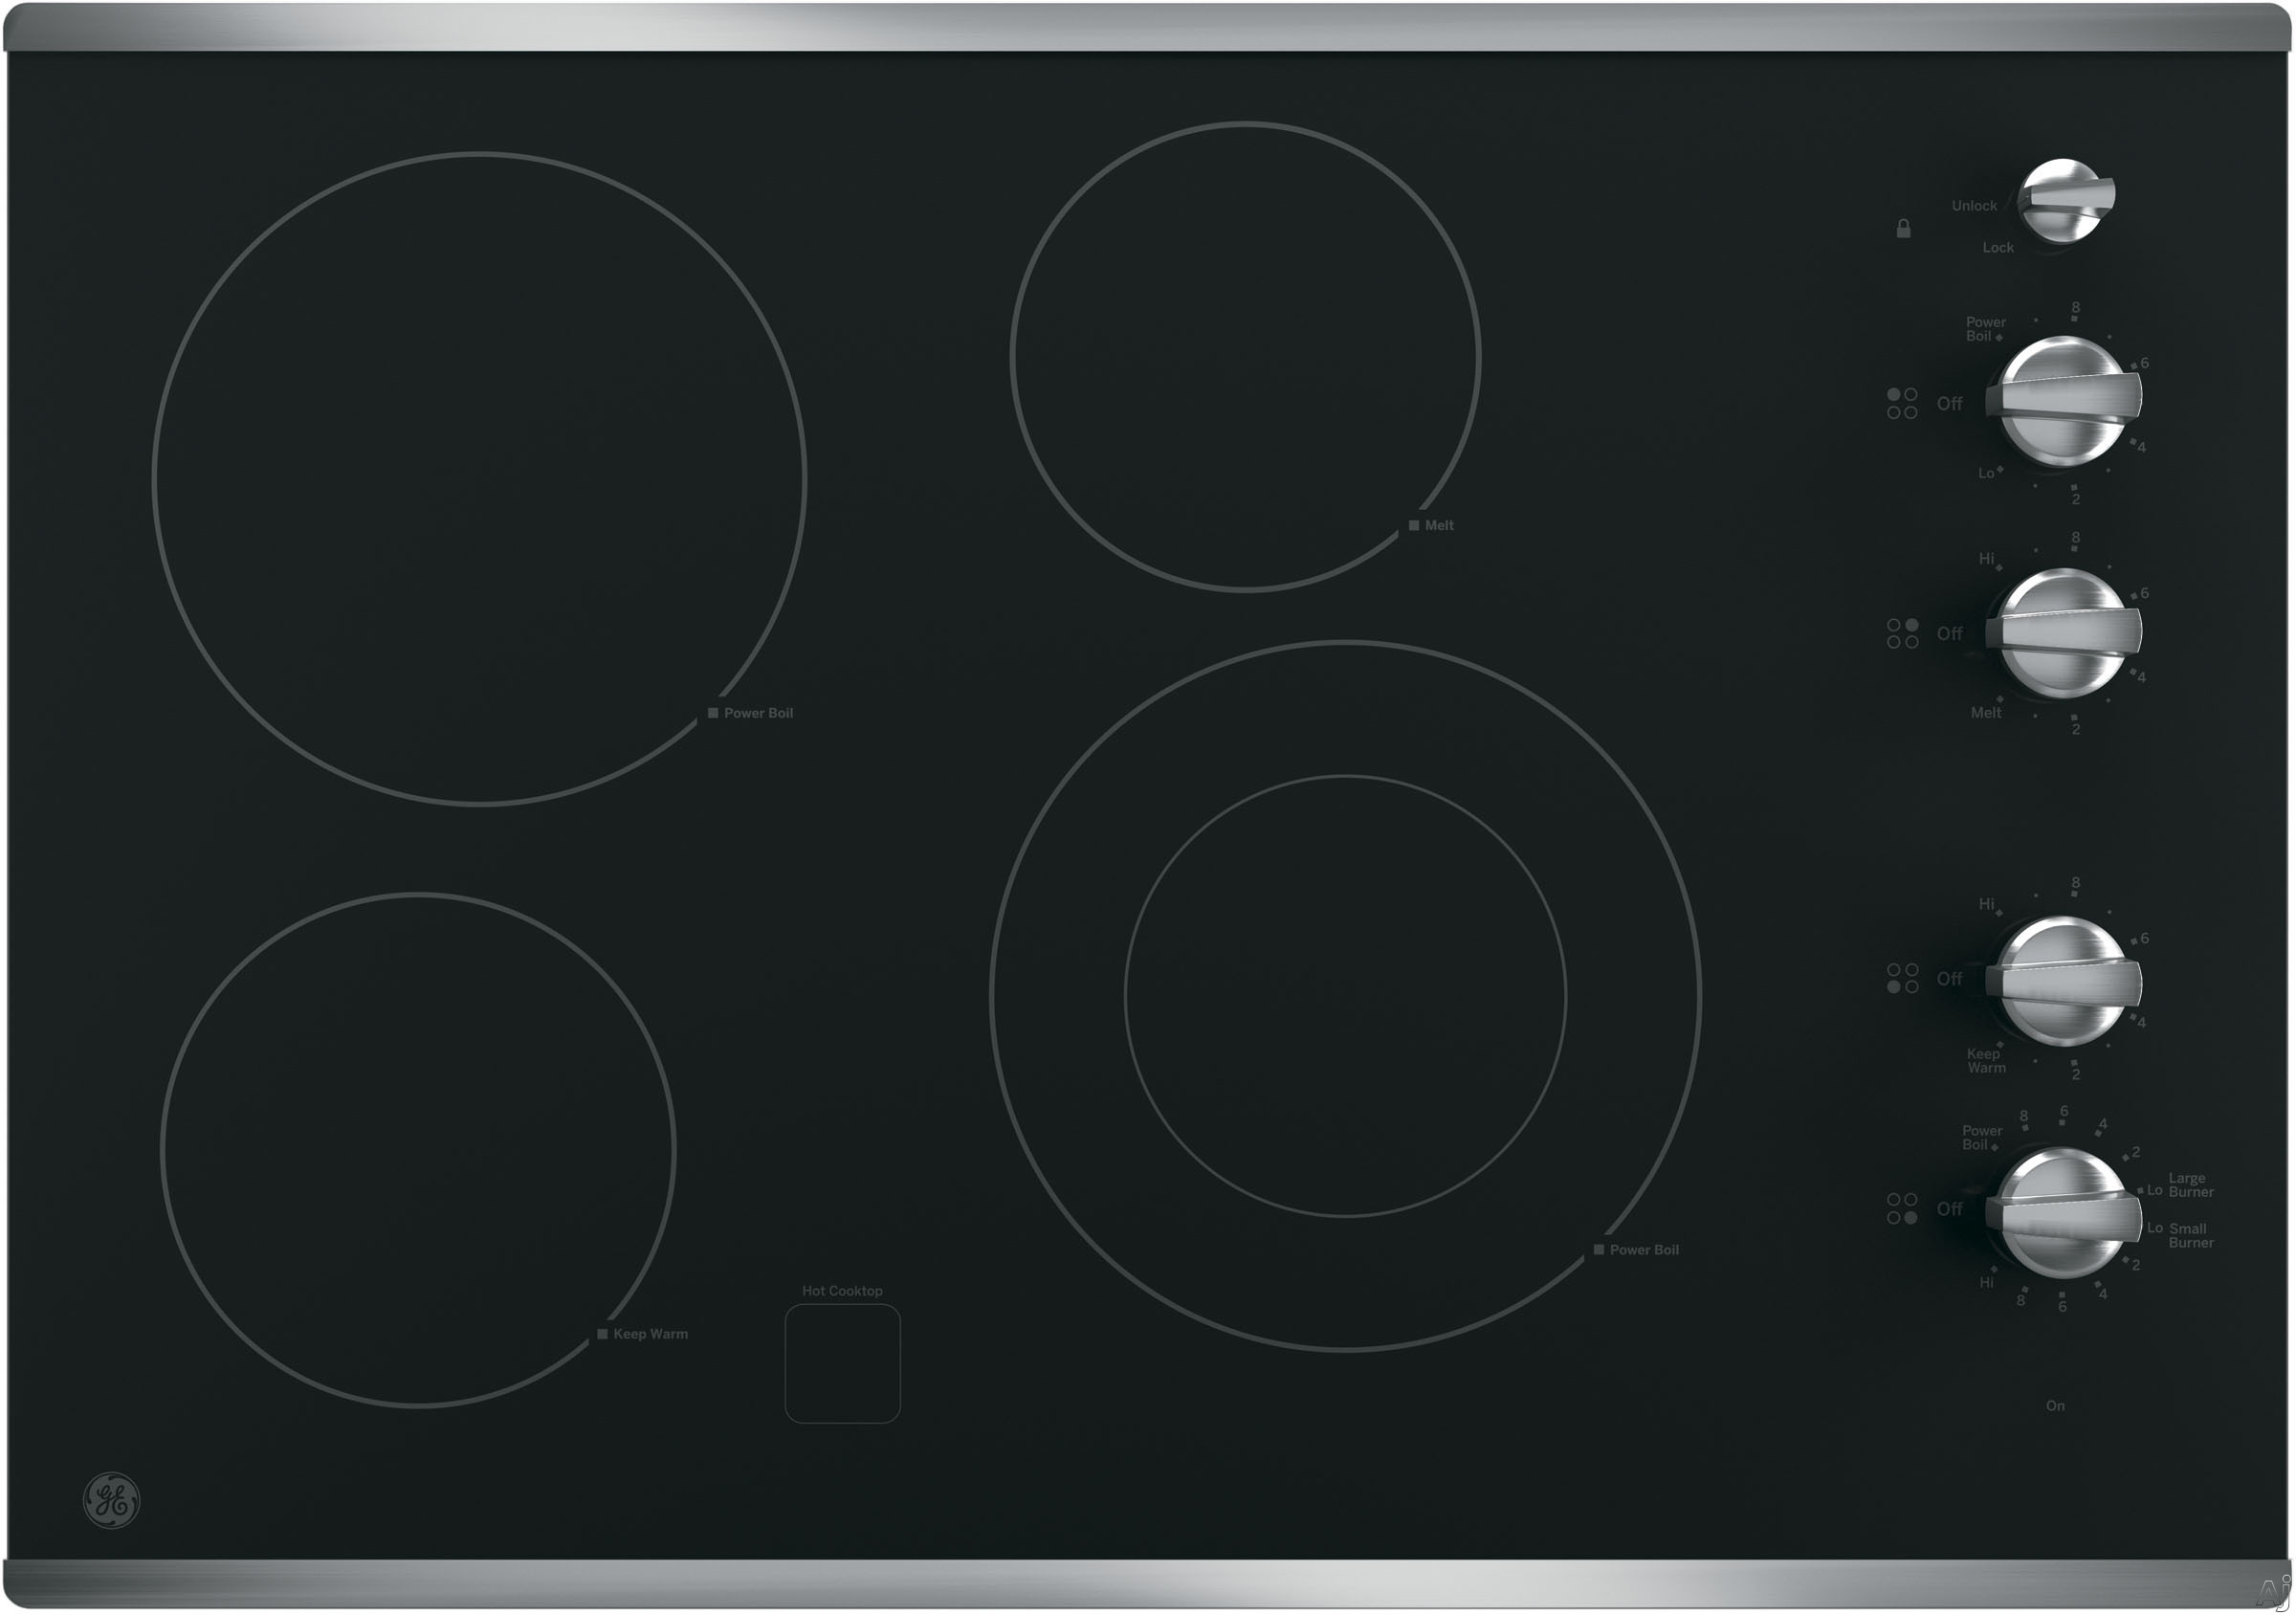 GE JP3530SJSS 30 Inch Smoothtop Electric Cooktop with 4 Radiant Elements, Front-Right Dual-Size Power Burner, Knob Controls, Keep Warm Setting, Melt Setting, GE Fits! Guarantee and ADA Compliant: Stai